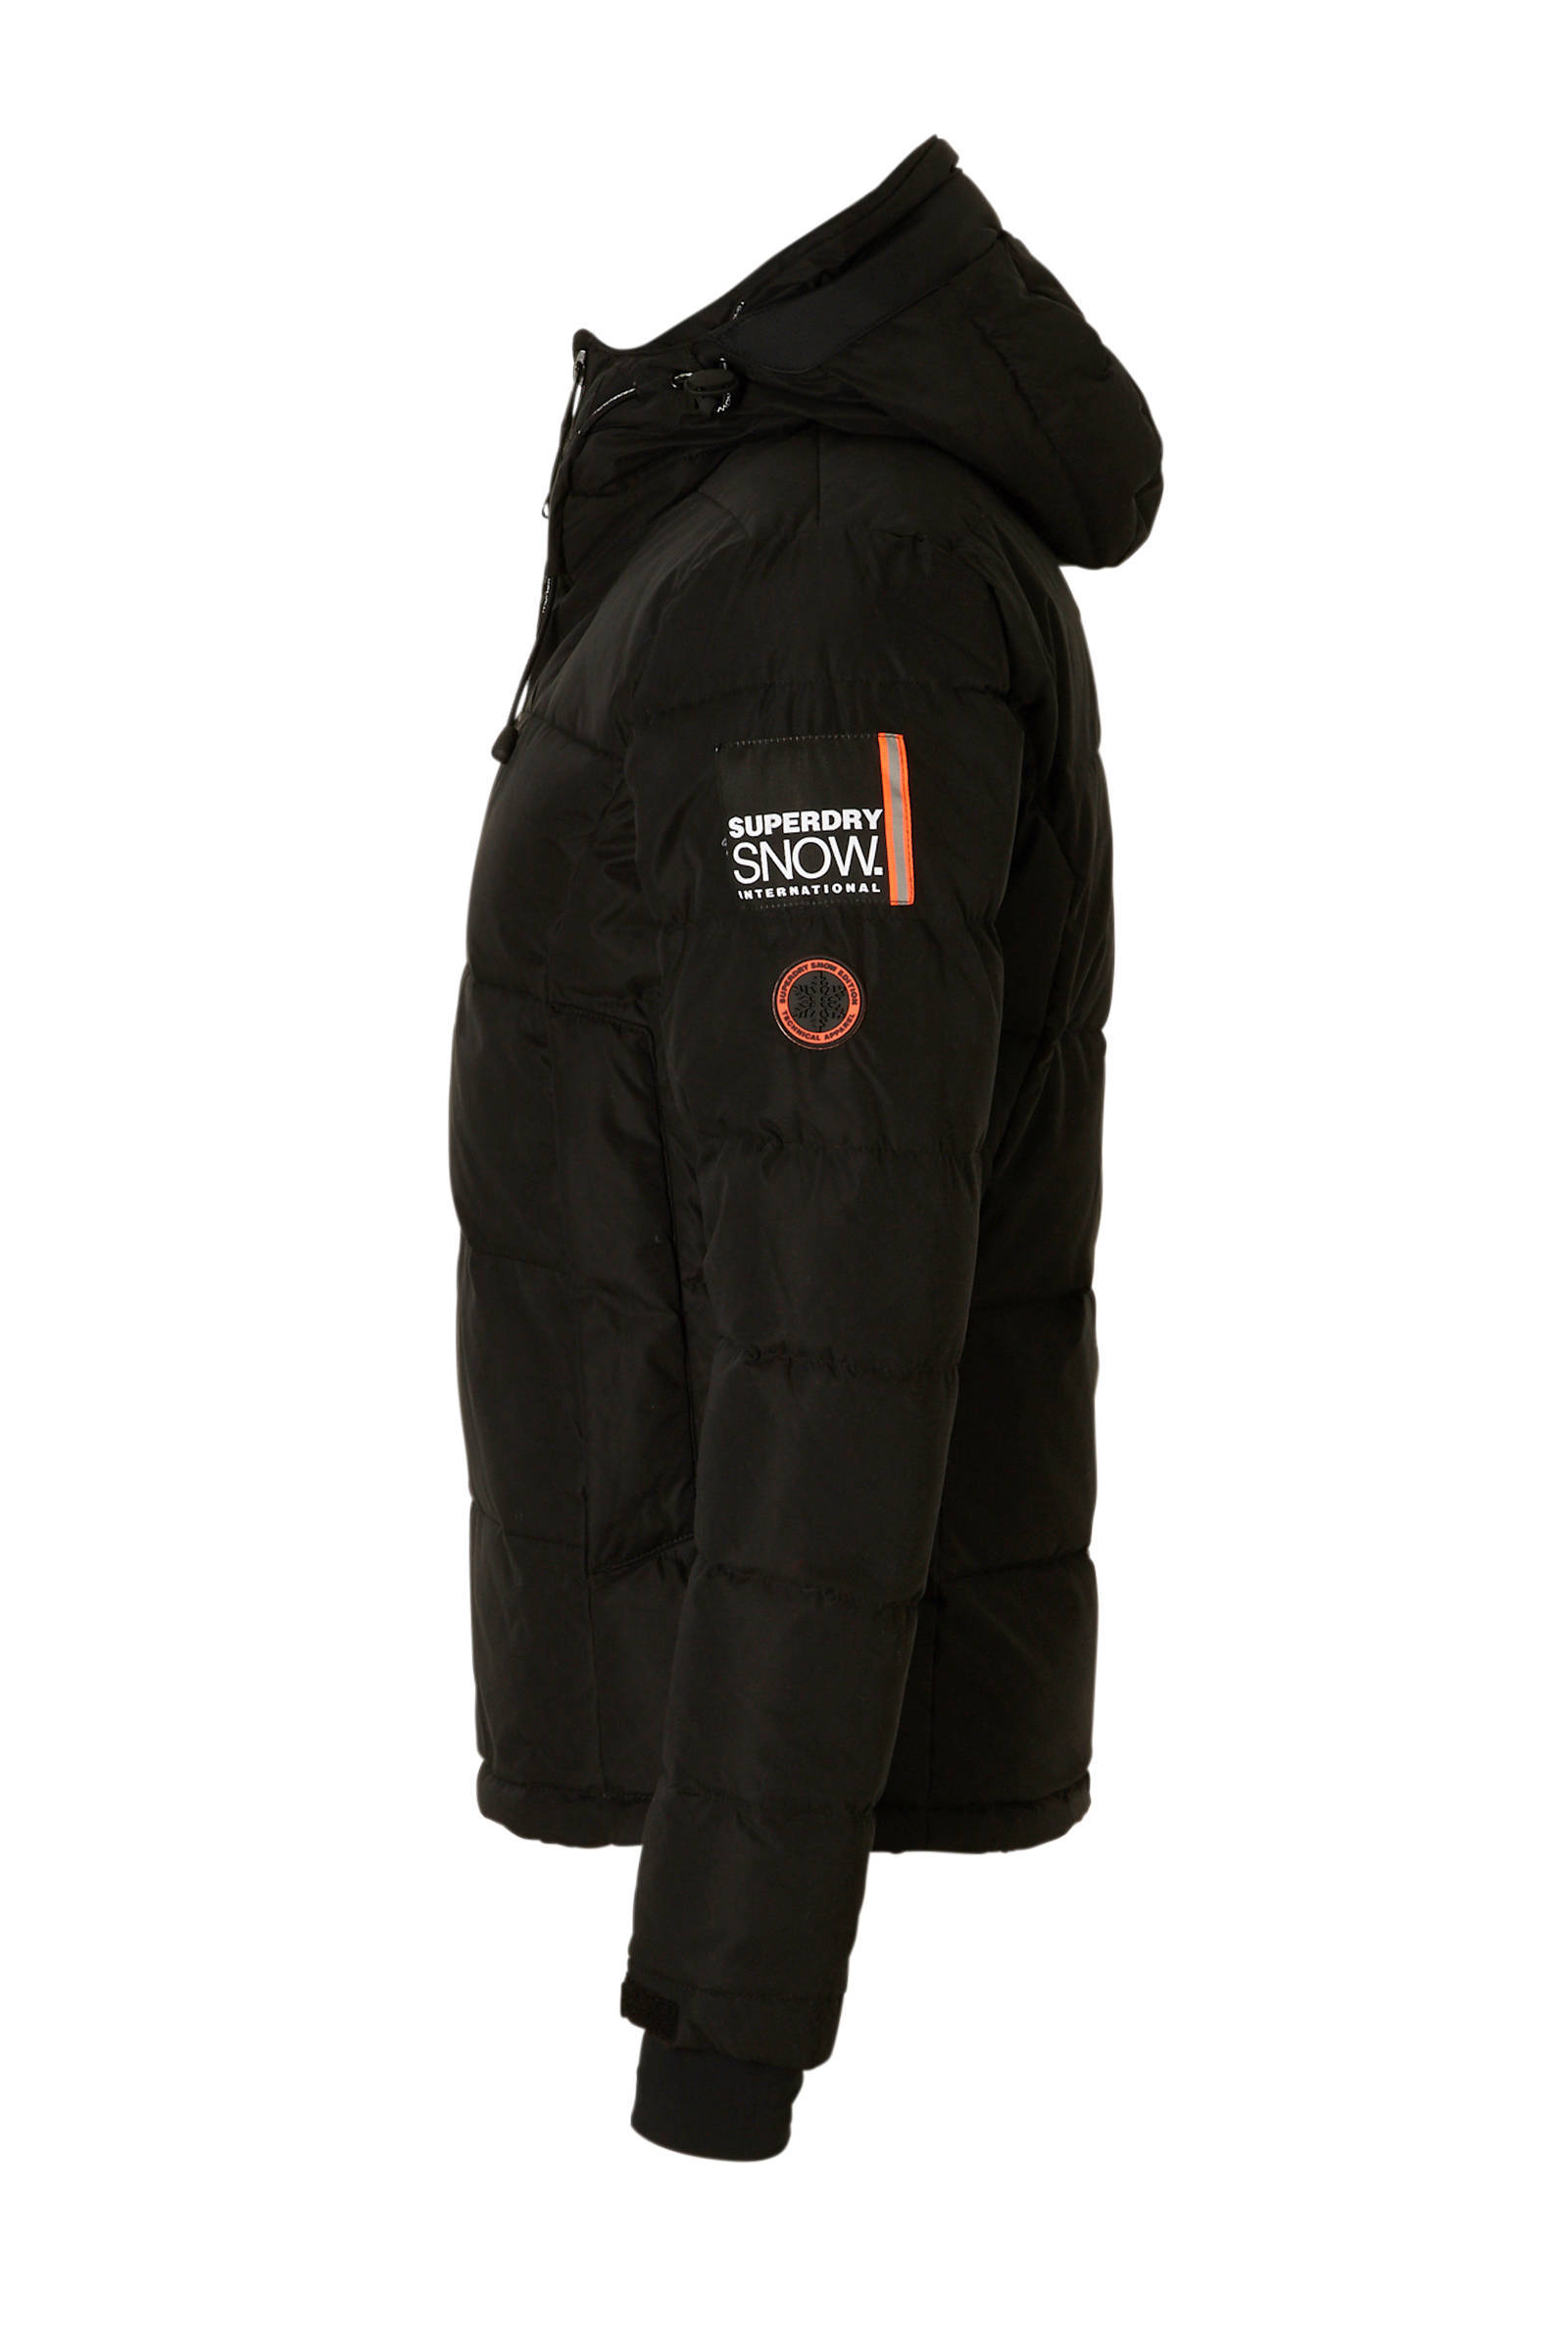 Superdry Snow Shadow Down Ski Jas Ski jassen Kleding